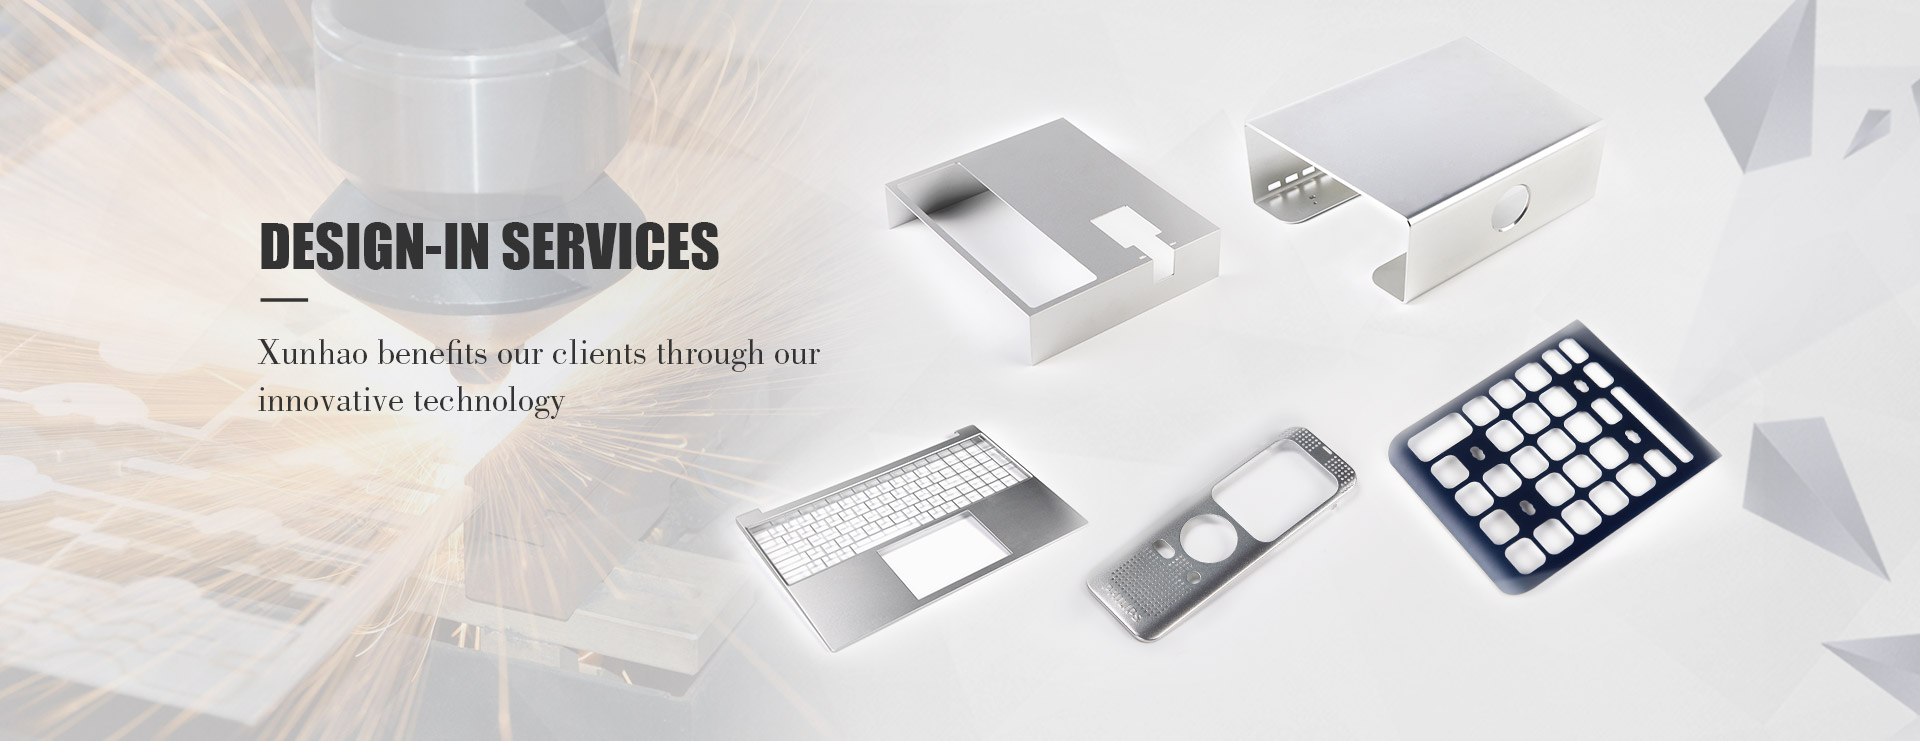 Design-in Services